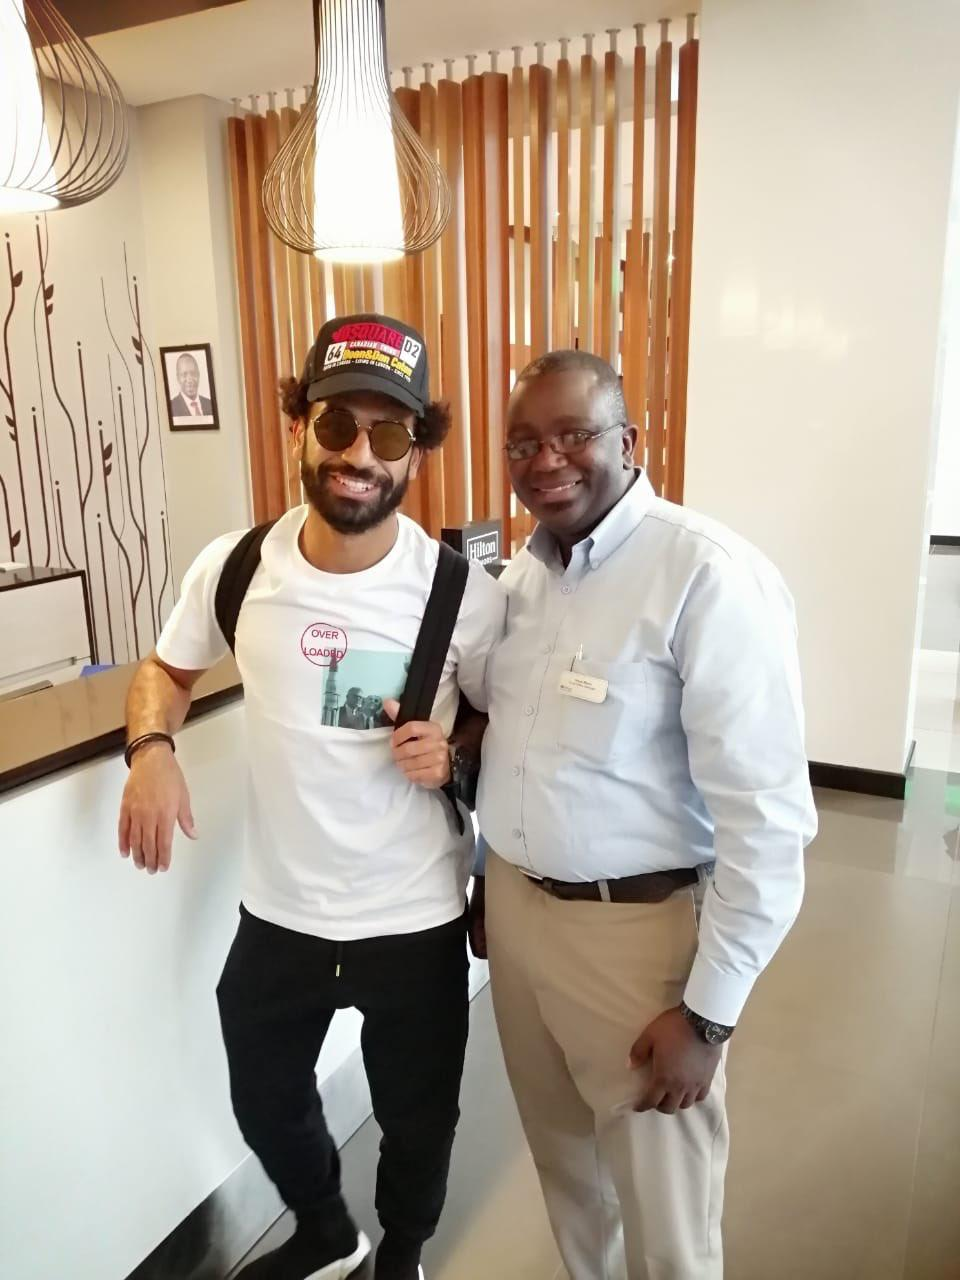 WhatsApp Image 2019 07 24 at 11.32.55 AM - Oh Emm Gee! Mo Salah spends night in Nairobi